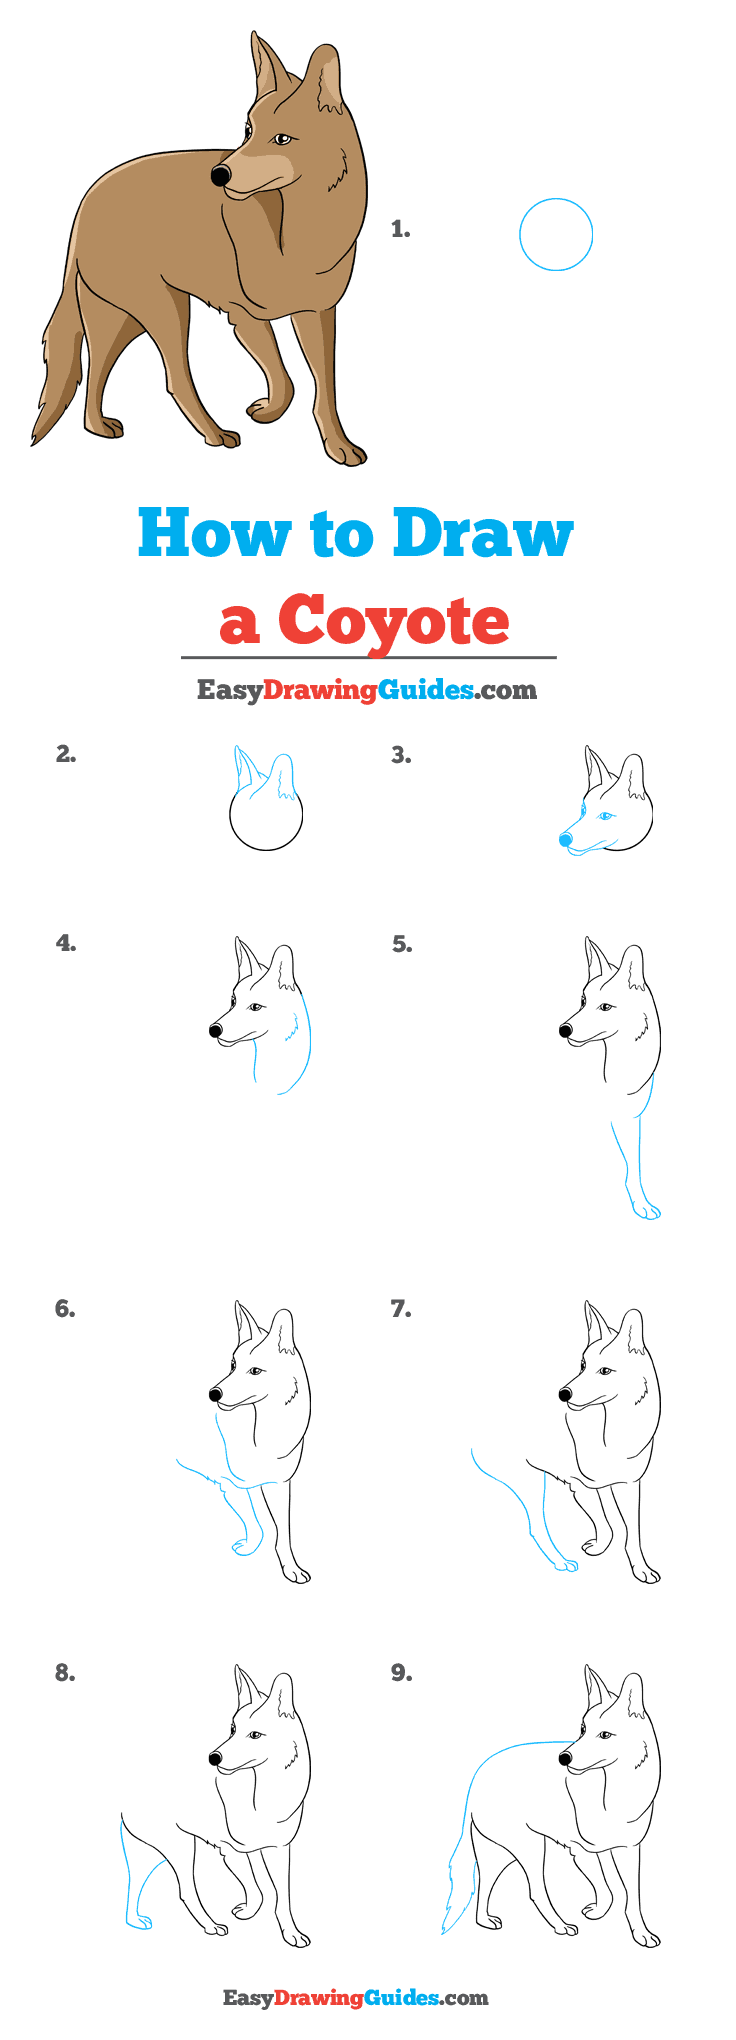 How to Draw Coyote